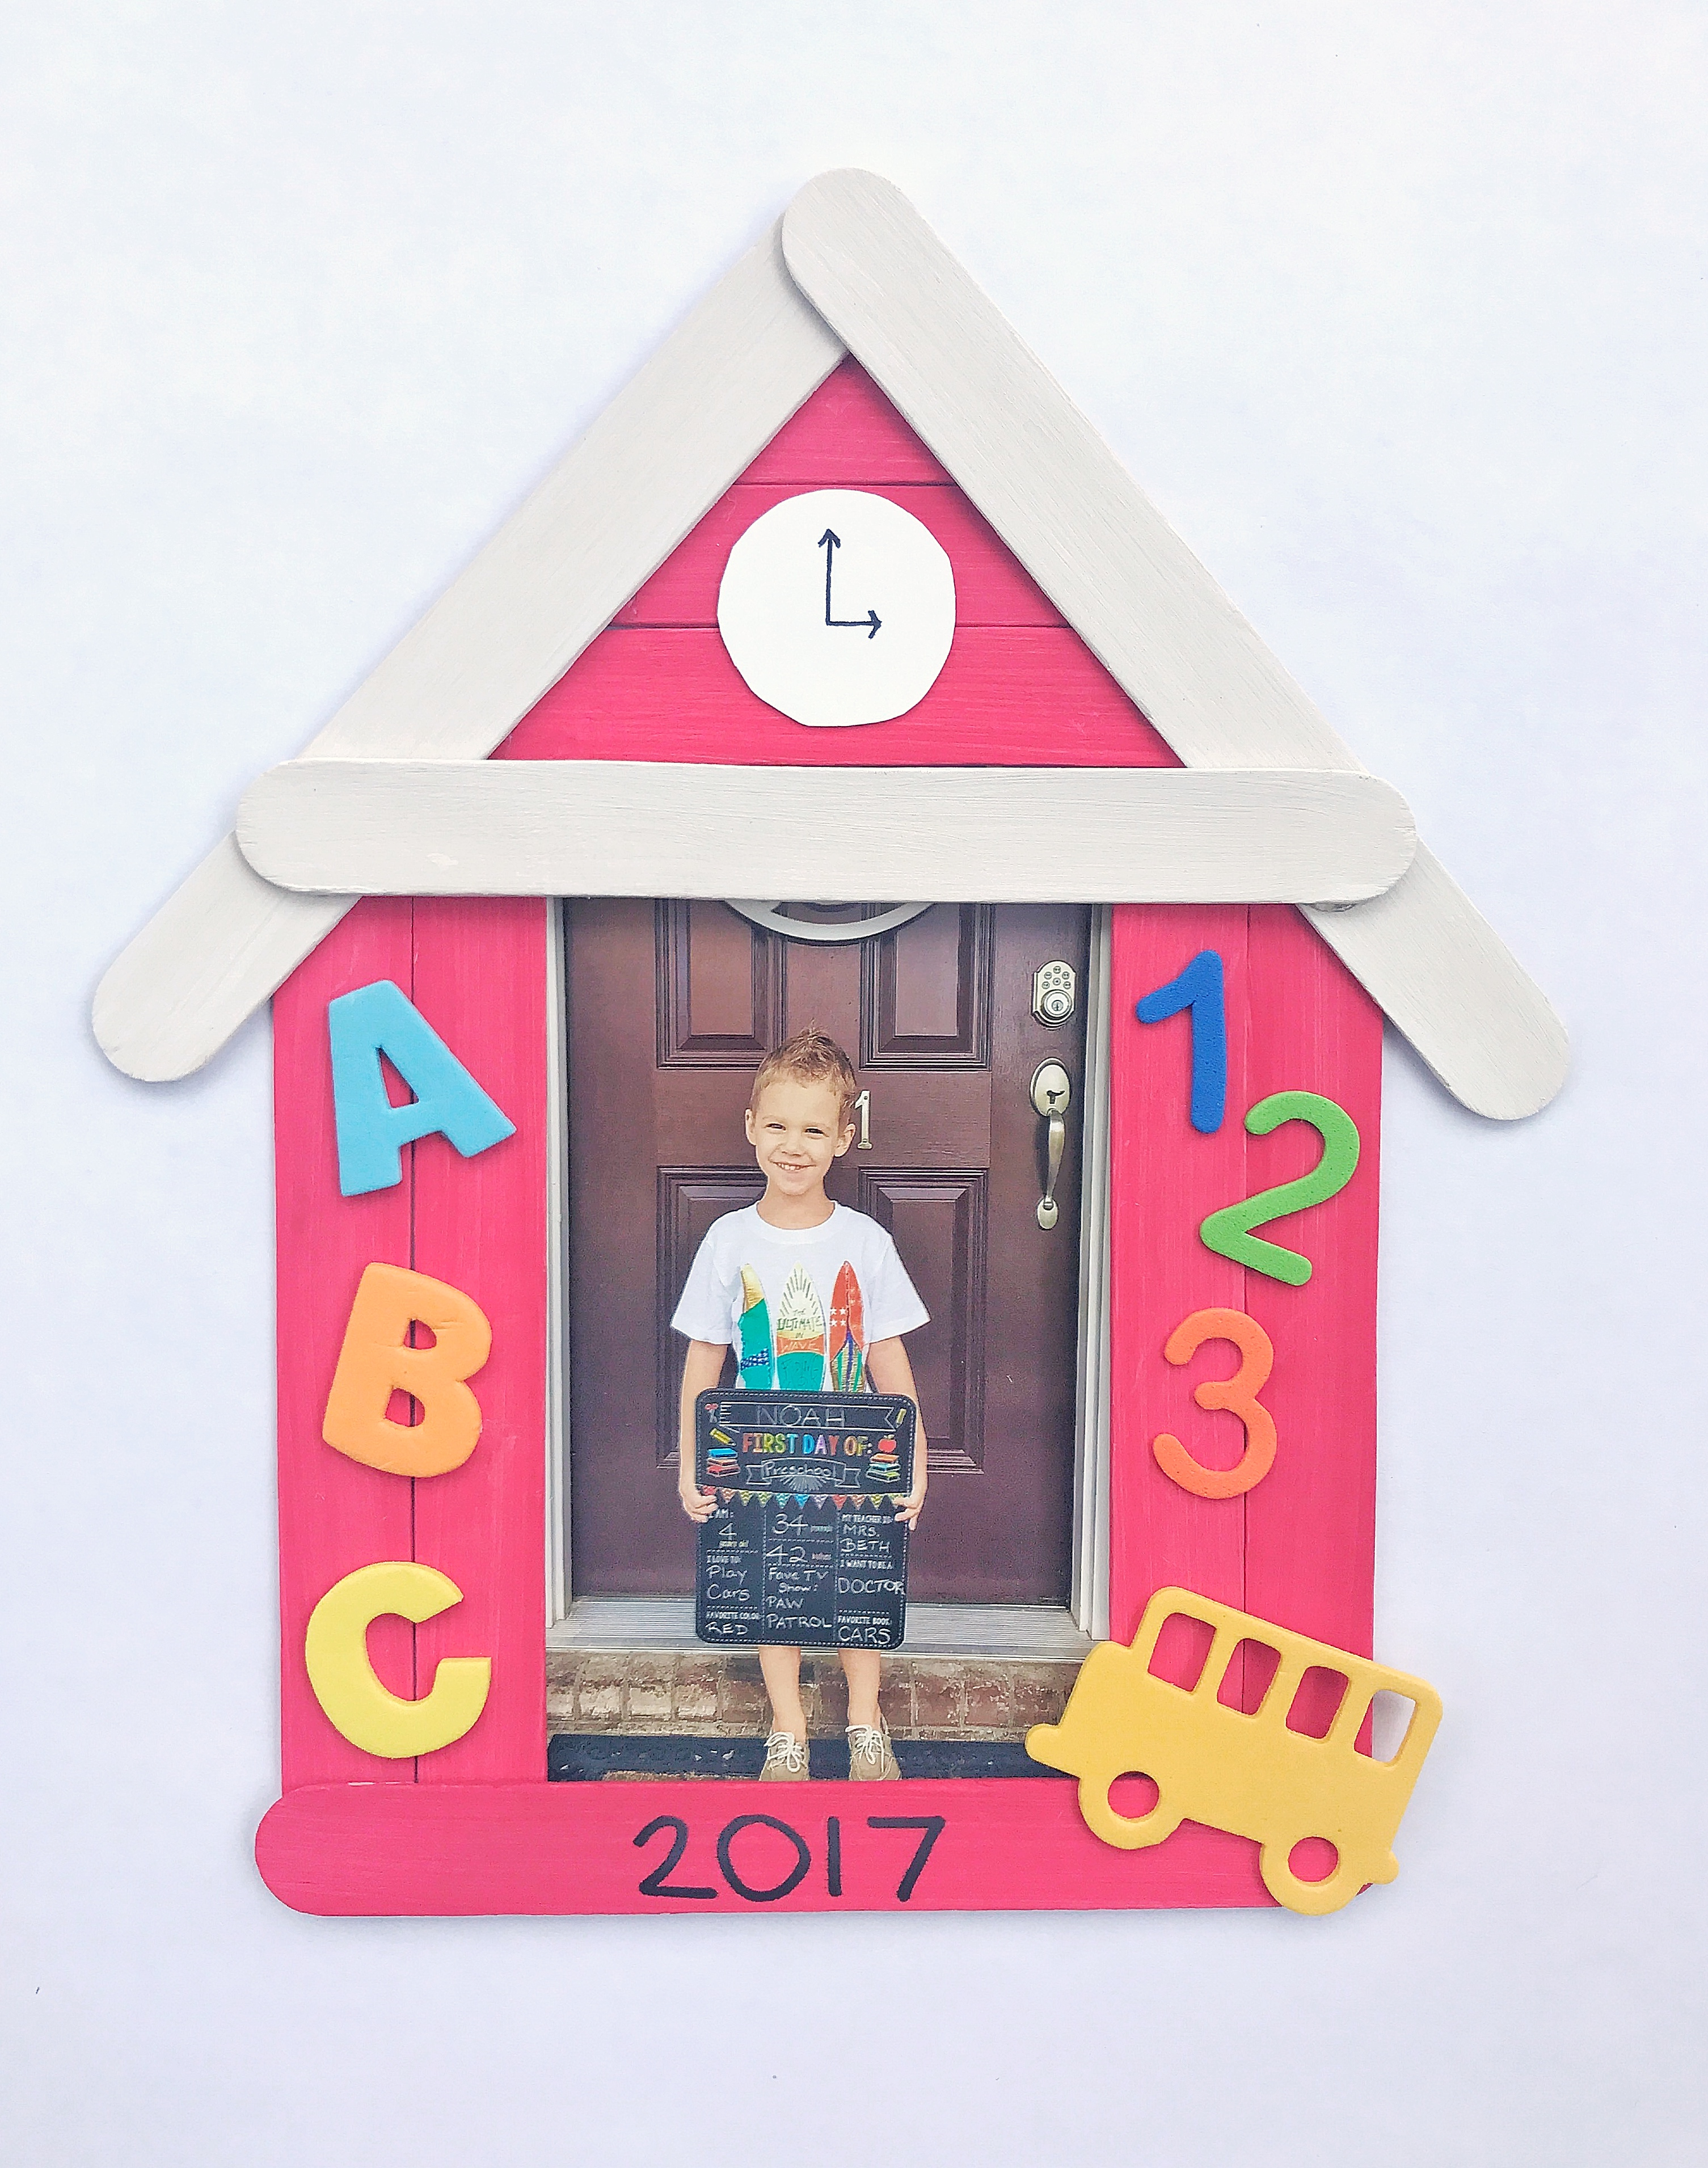 Popsicle stick schoolhouse picture frame craft grace giggles who else is ready for the school year to start have you started preparing for back to school yet jeuxipadfo Gallery